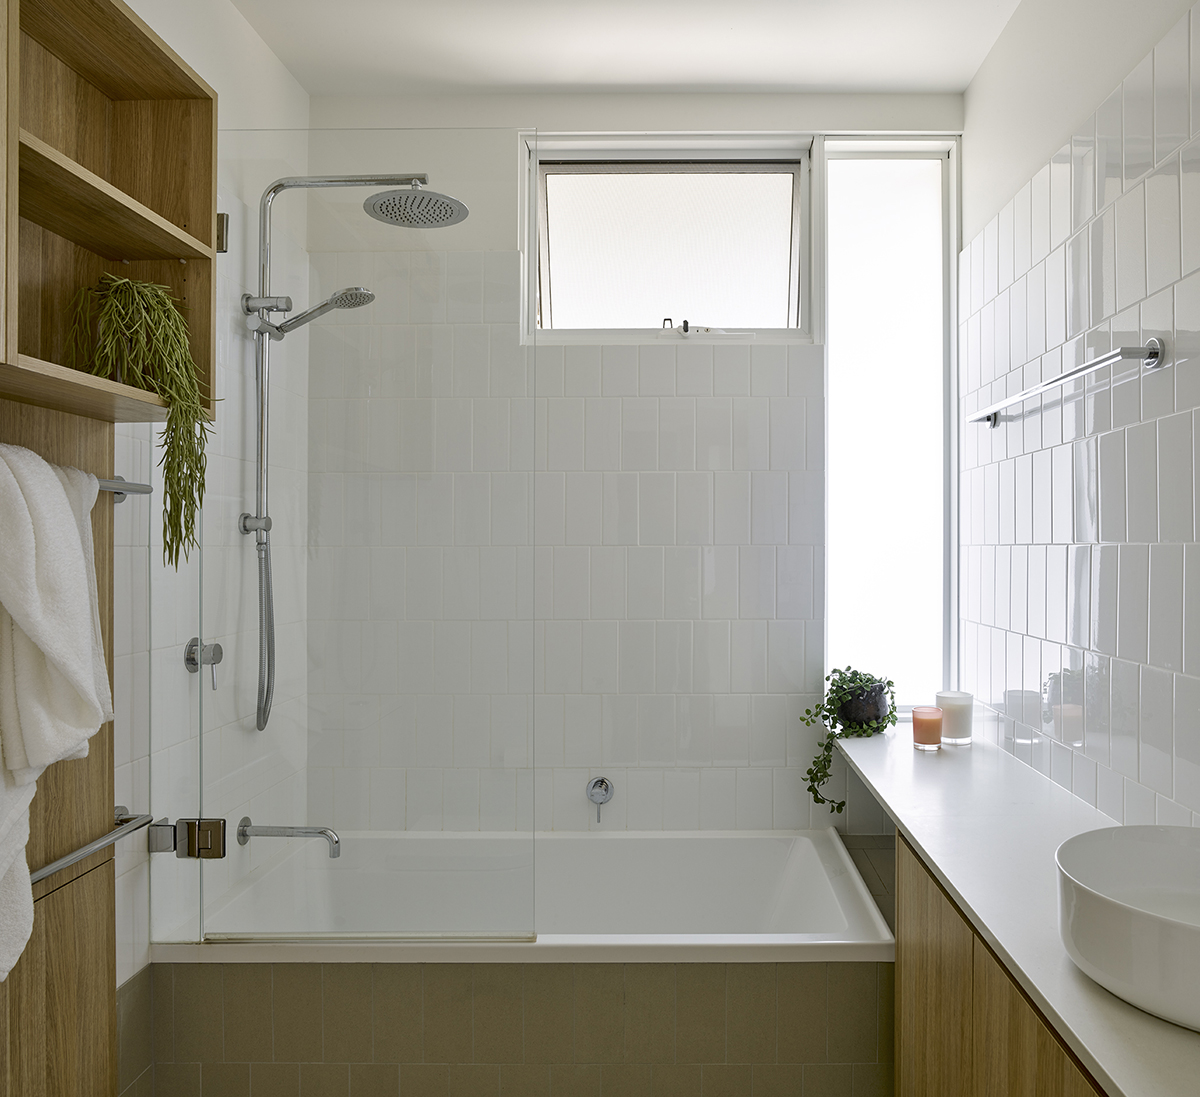 Image Of A Renovated Bathroom With White Tiles And Timber Cabinets.